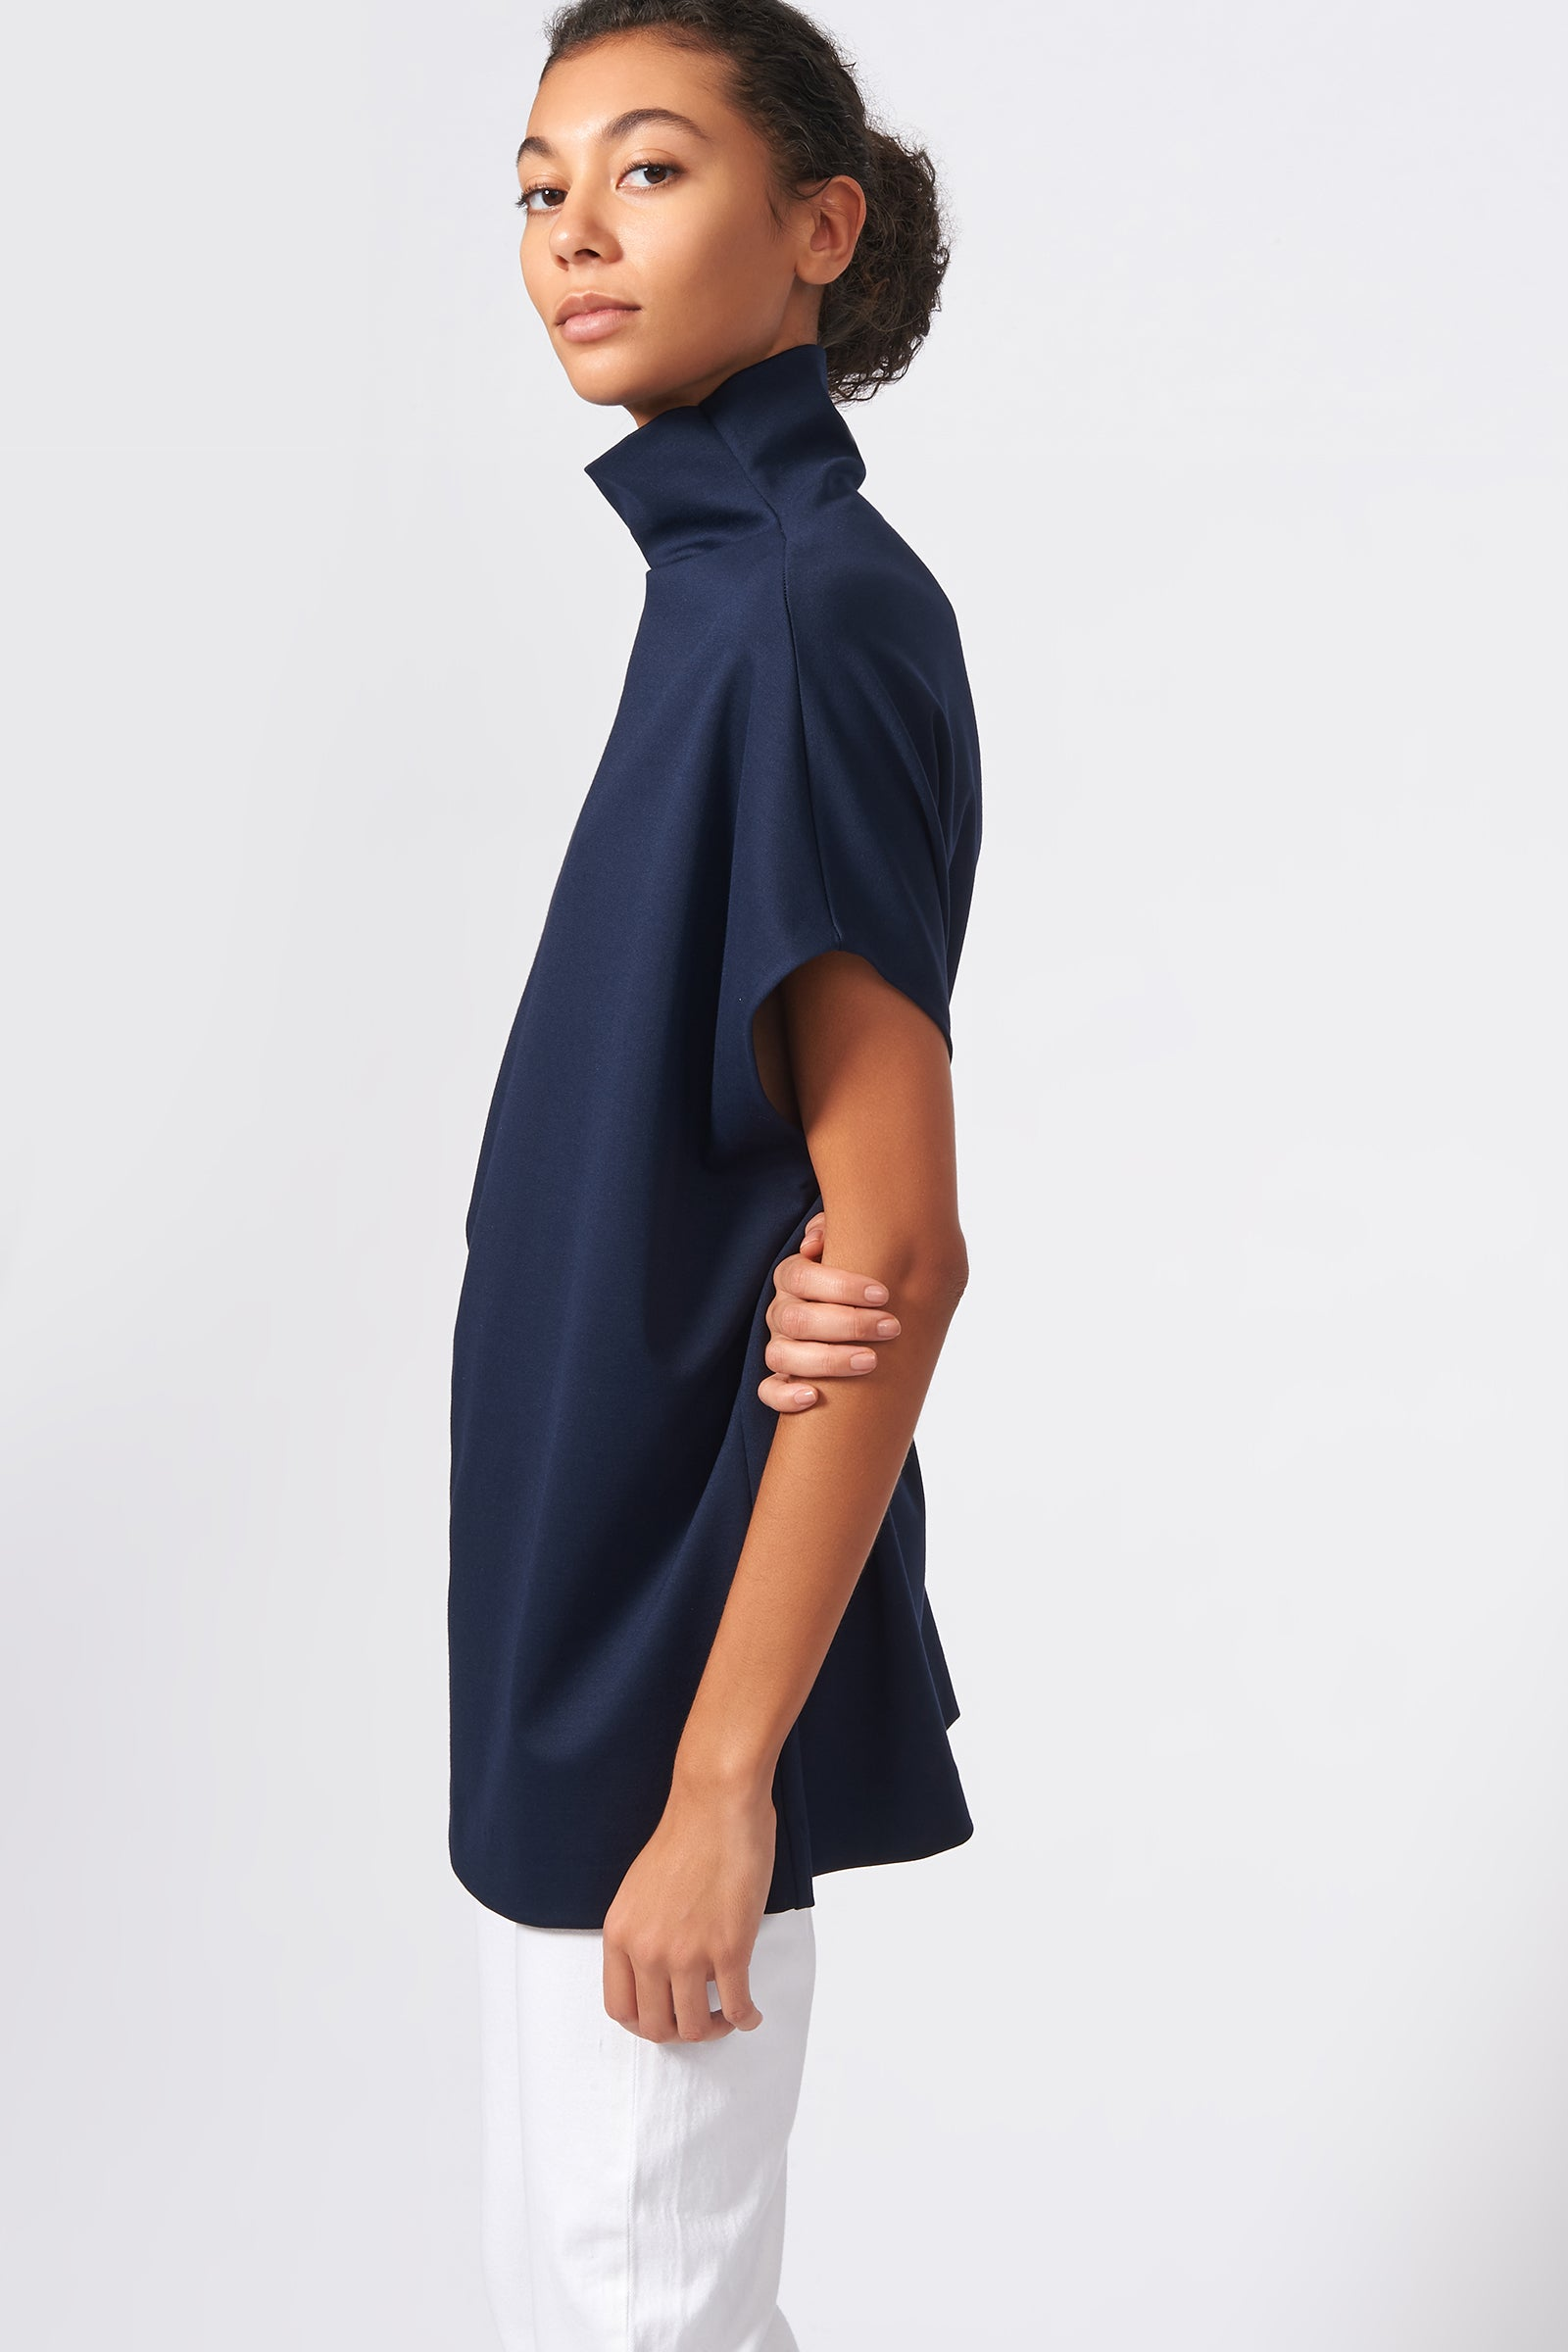 Kal Rieman Ponte Funnelneck in Navy on Model Side View